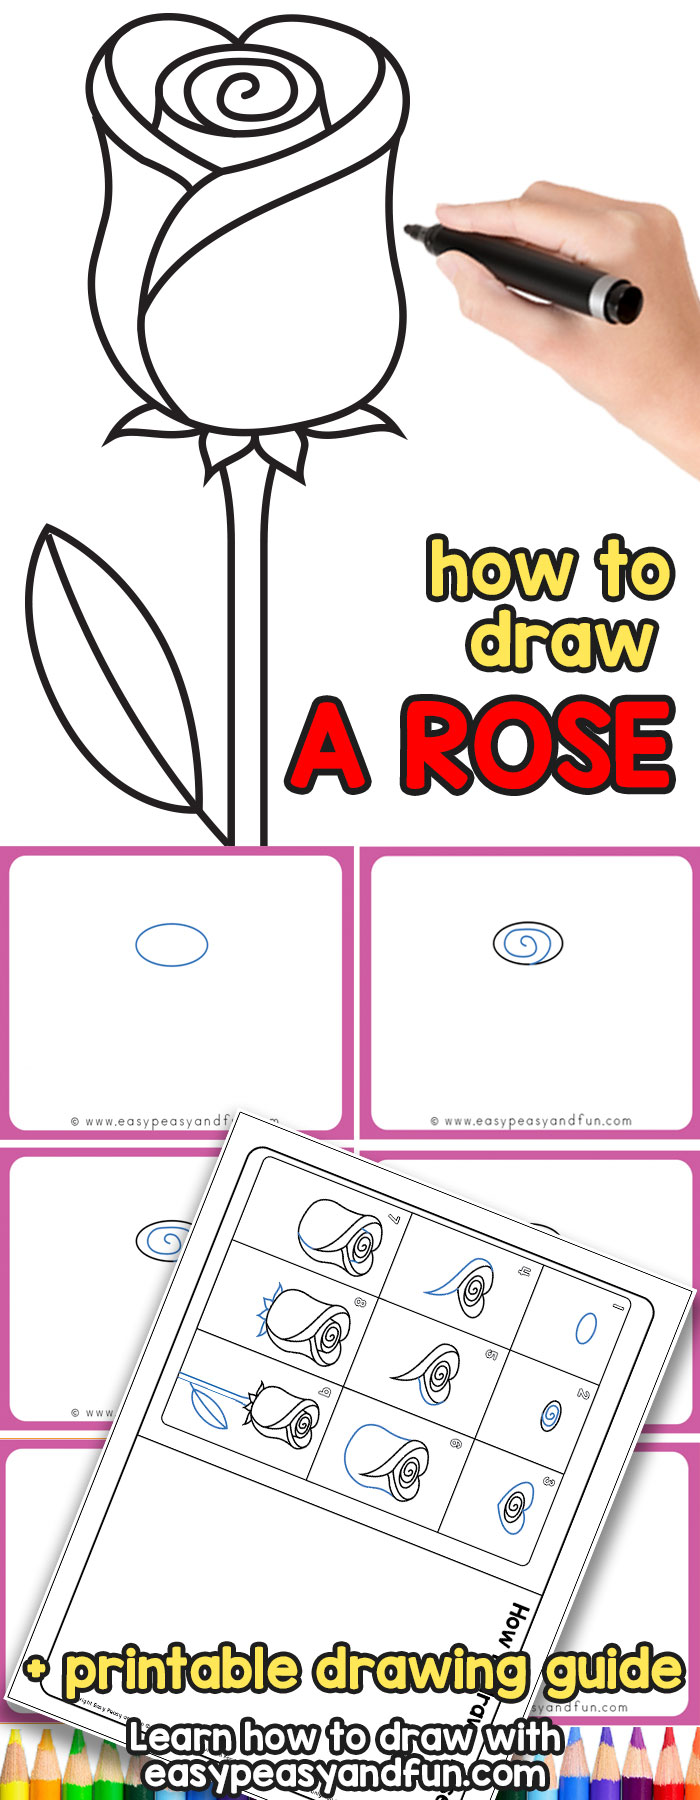 How To Draw A Rose Easy Step By